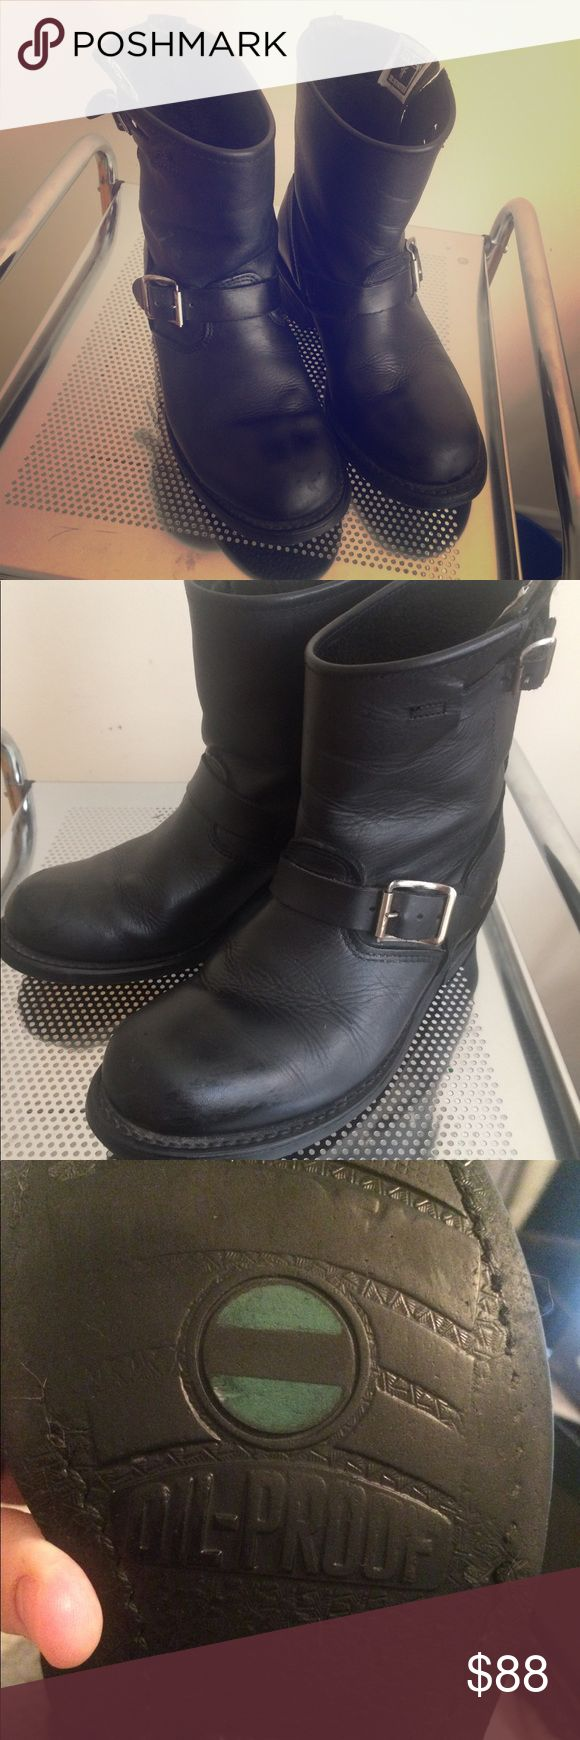 """FRYE black leather mid calf biker boots! Frye Engineer /Veronica Shortie black leather biker boots. Size 6.5R. In excellent condition!! Really comfortable and such a great boot. Original box. (Box is taped) Great deal! - Made in the USA. Sourced from domestic and imported products. - Unlined - 7"""" shaft height - 12 1/2"""" shaft circumference - 1 1/2"""" heel height - Stacked leather heel Frye Shoes Combat & Moto Boots"""